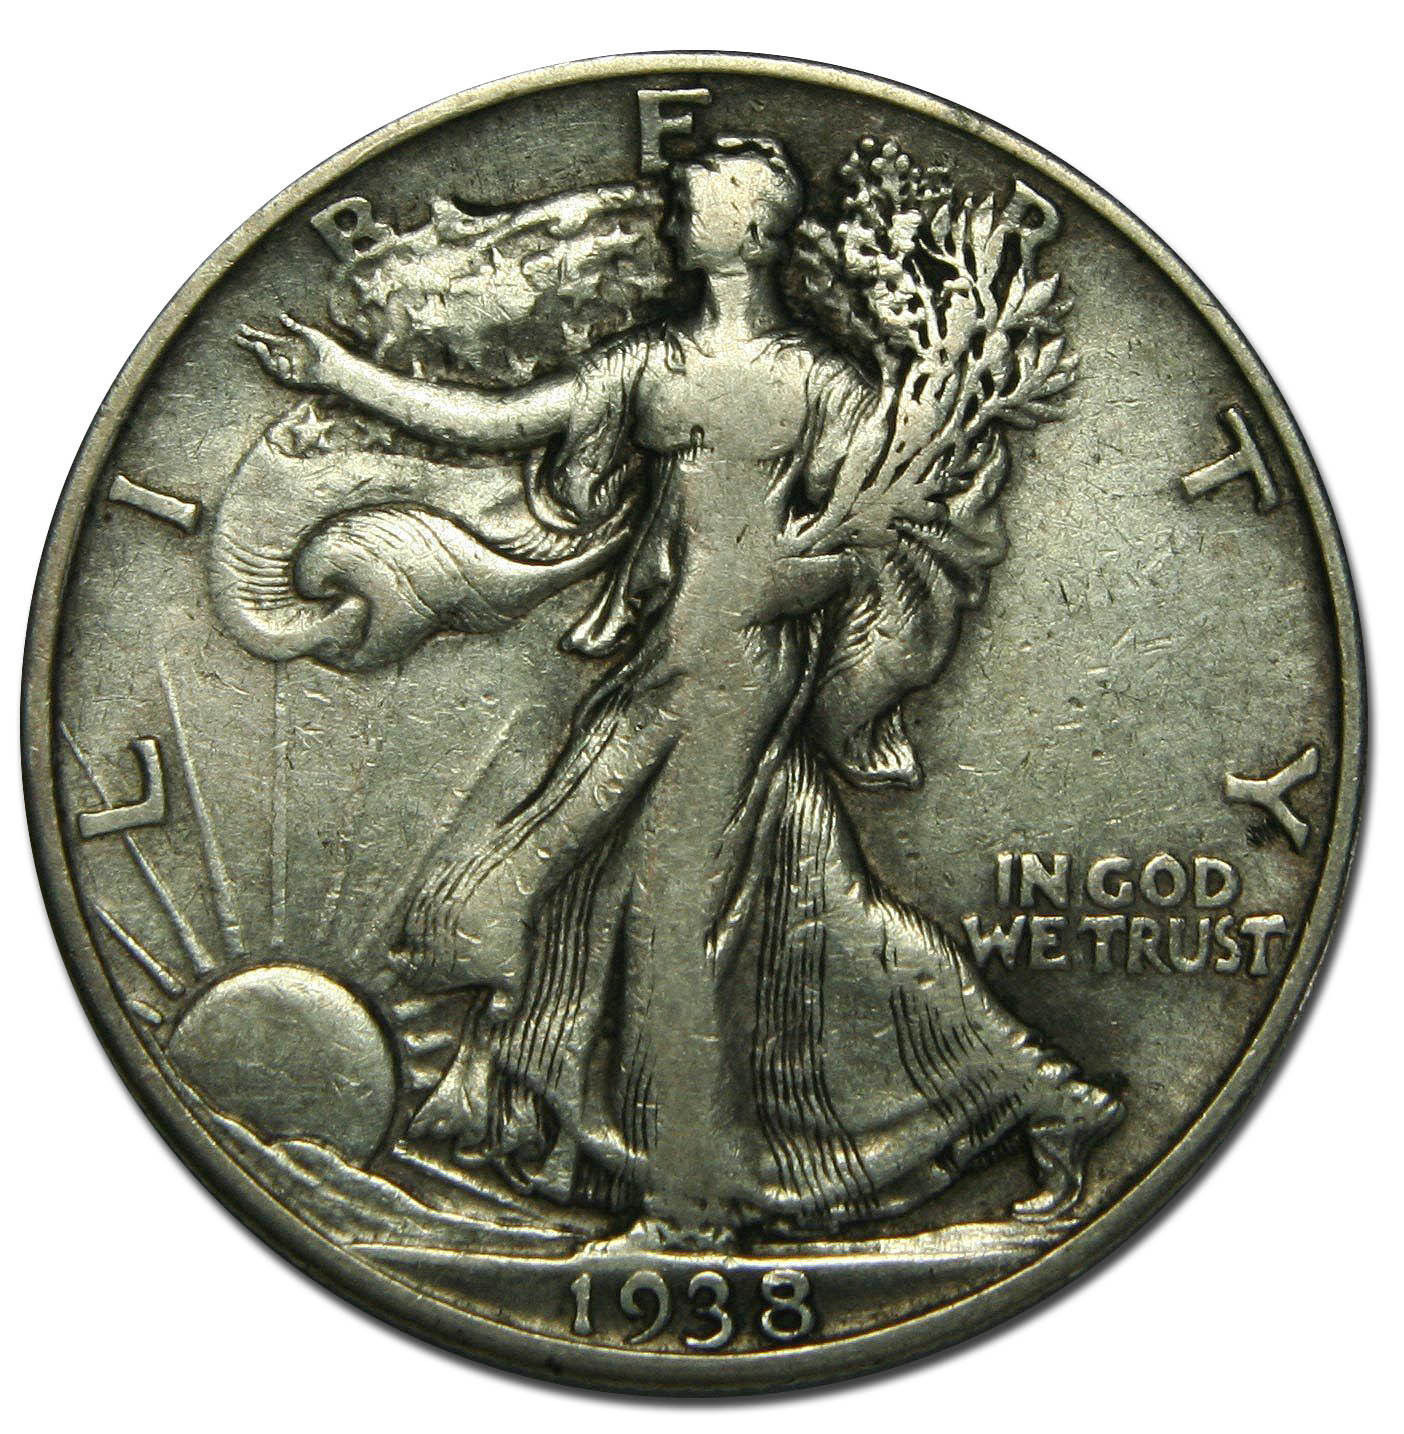 1938D Walking Liberty Silver Half Dollar Coin Lot# MZ 2545